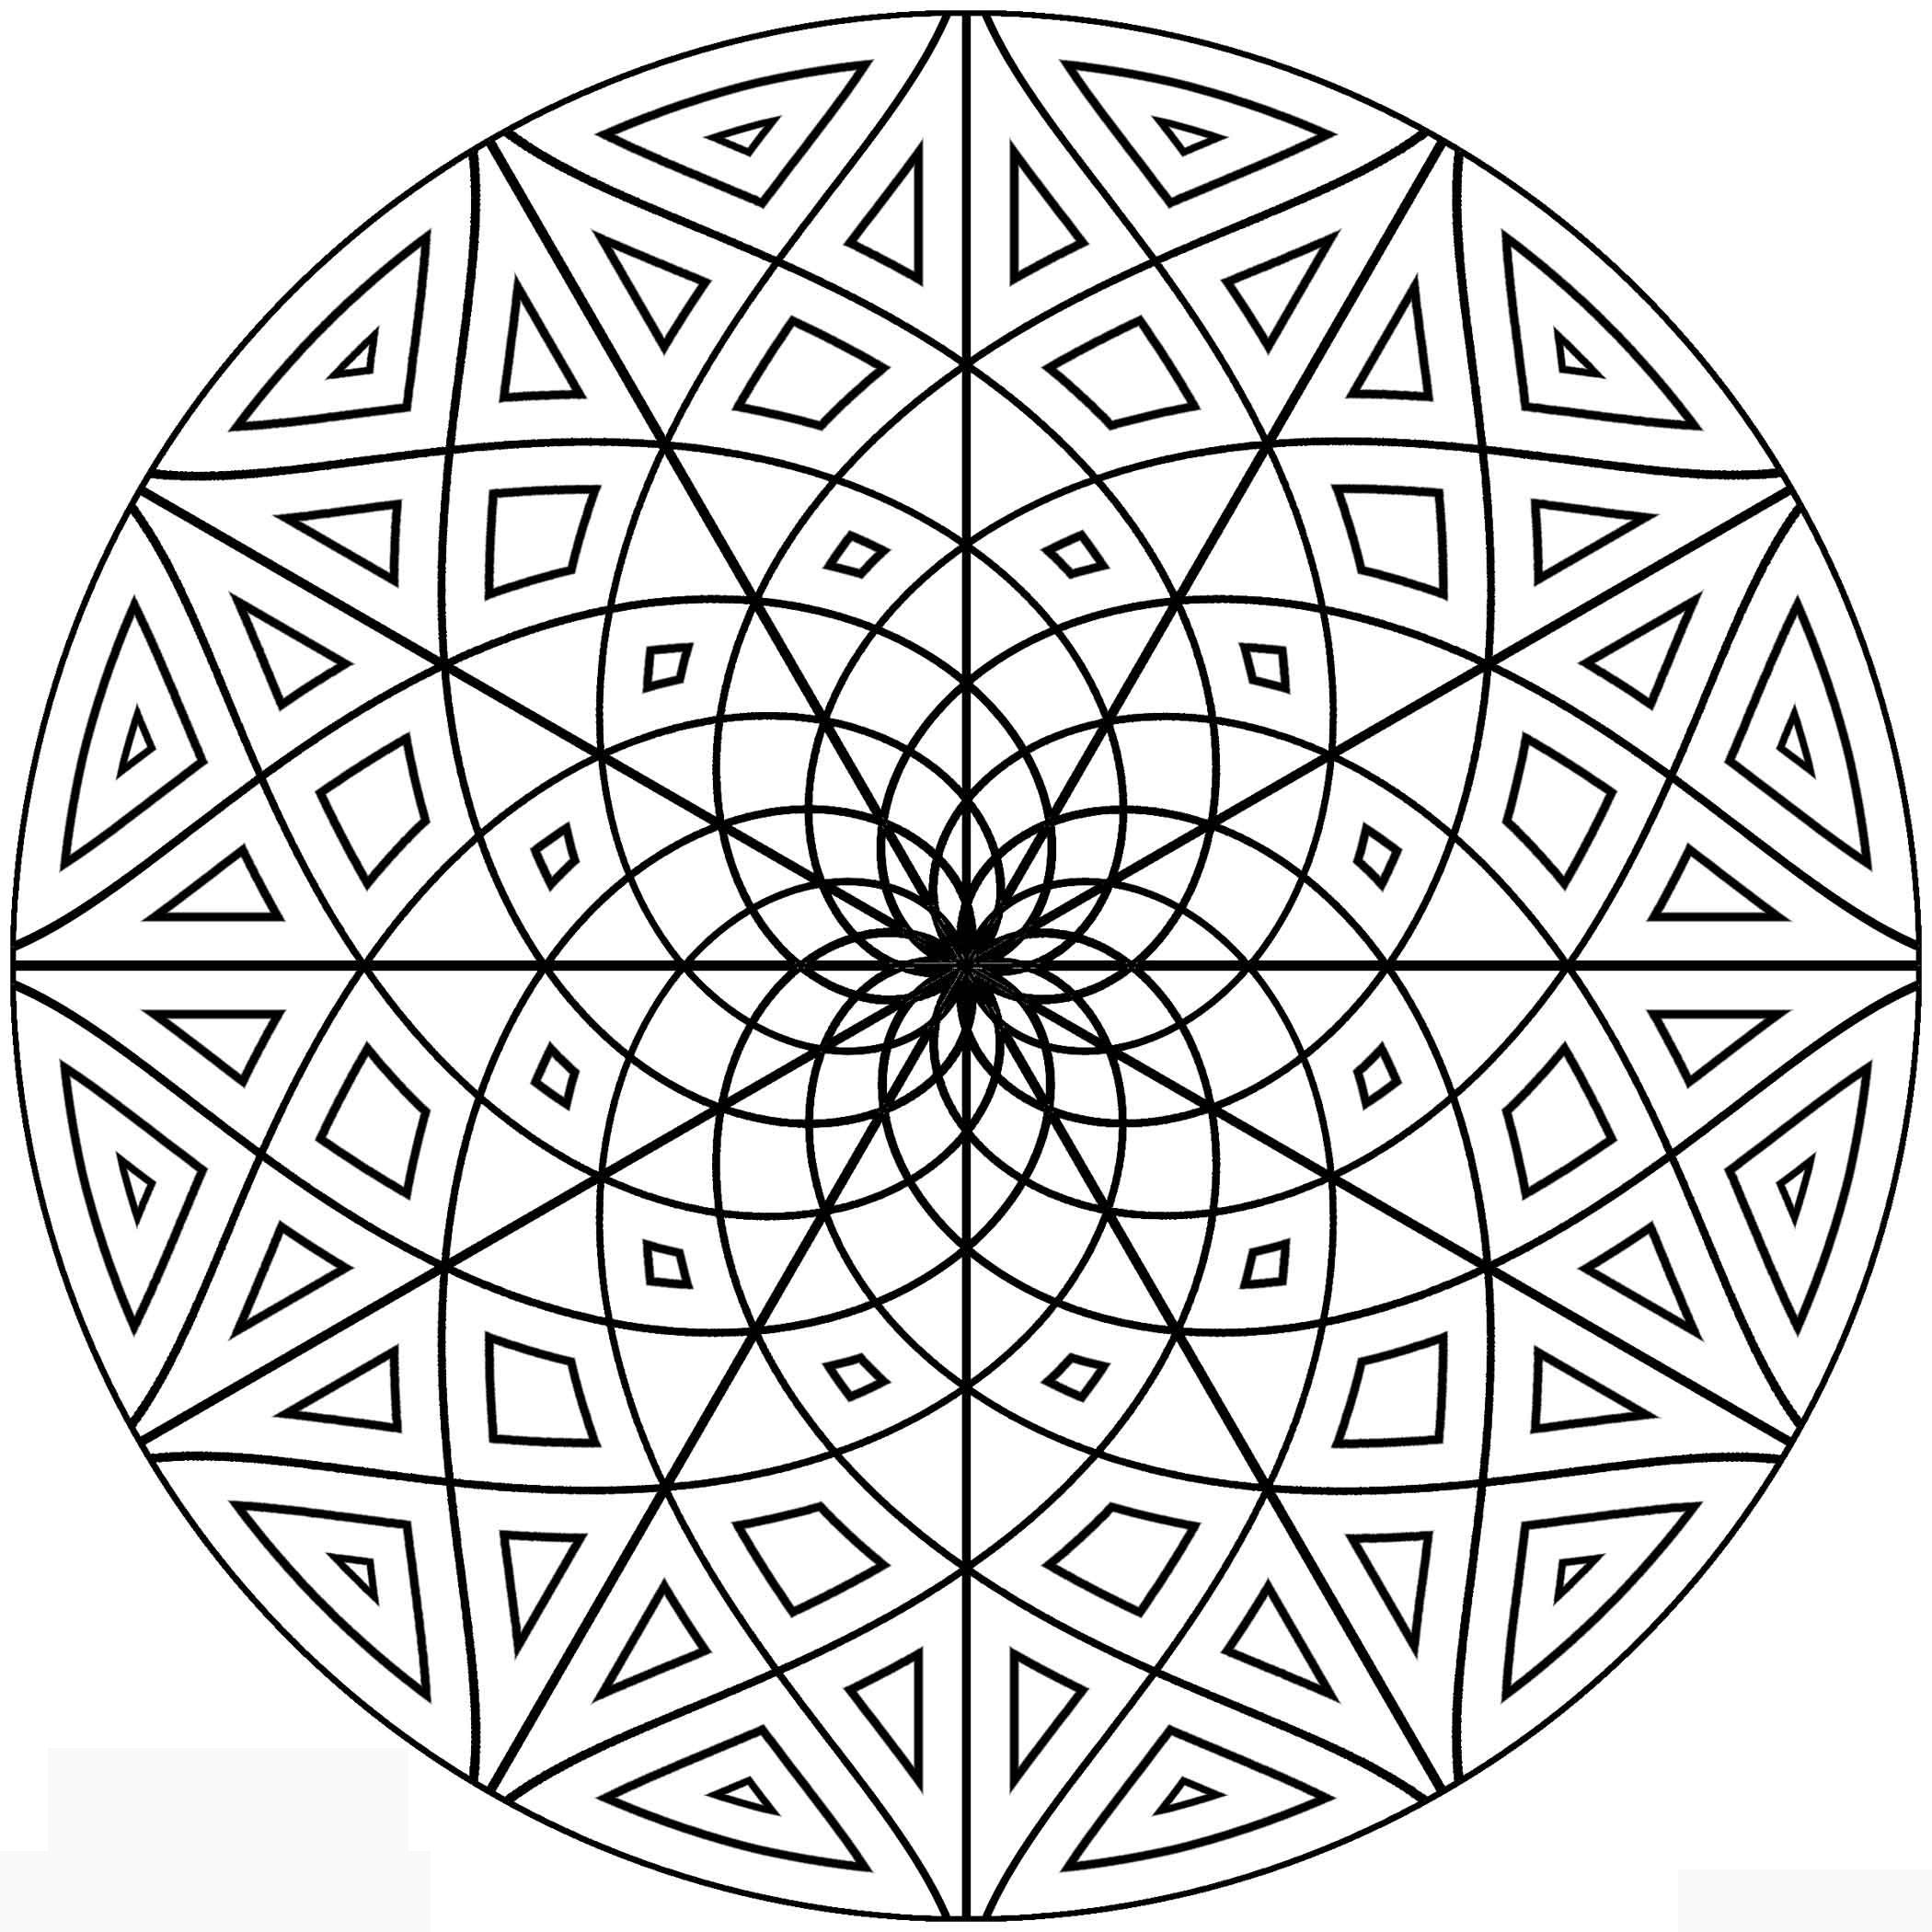 Coloring Pages Online Mandala Coloring Pages mandala online coloring pages futpal com auromas